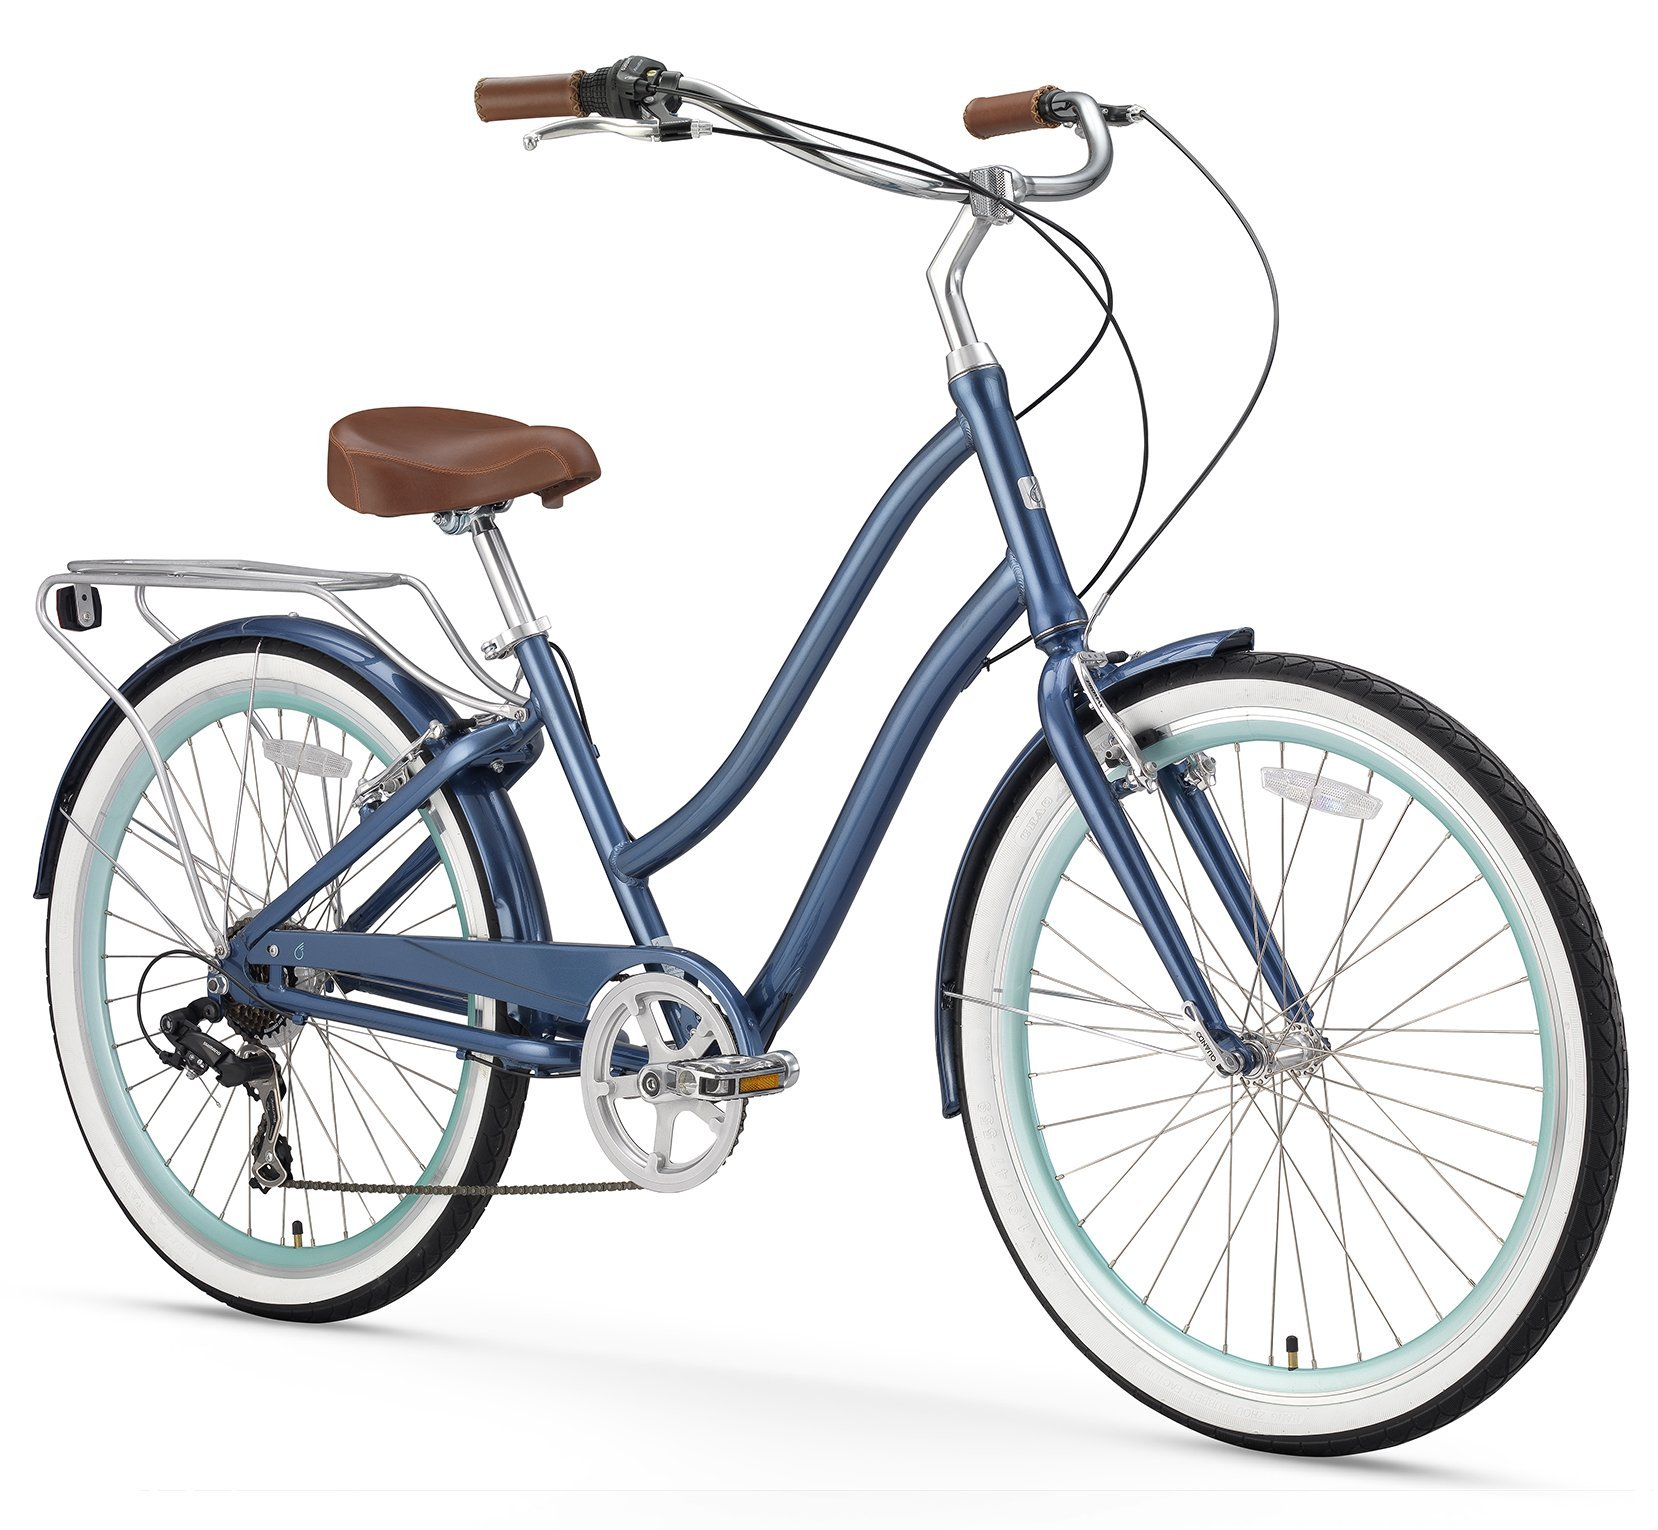 ca97963a2c1 sixthreezero EVRYjourney Women s Step-Through Hybrid Cruiser Bicycle  (24-Inch and 26-Inch)